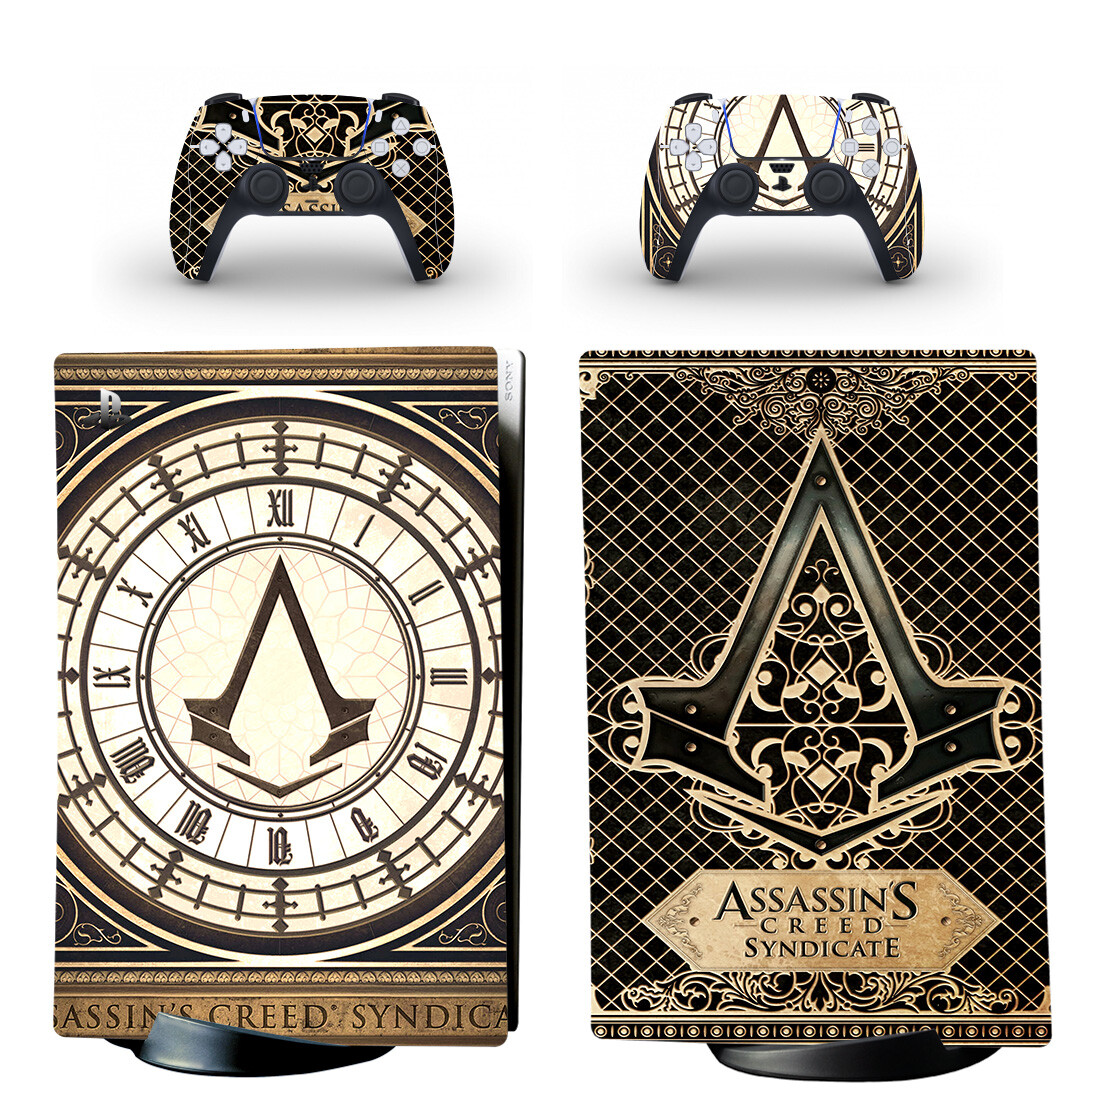 Assassin's Creed Syndicate PS5 Digital Edition Skin Sticker Decal